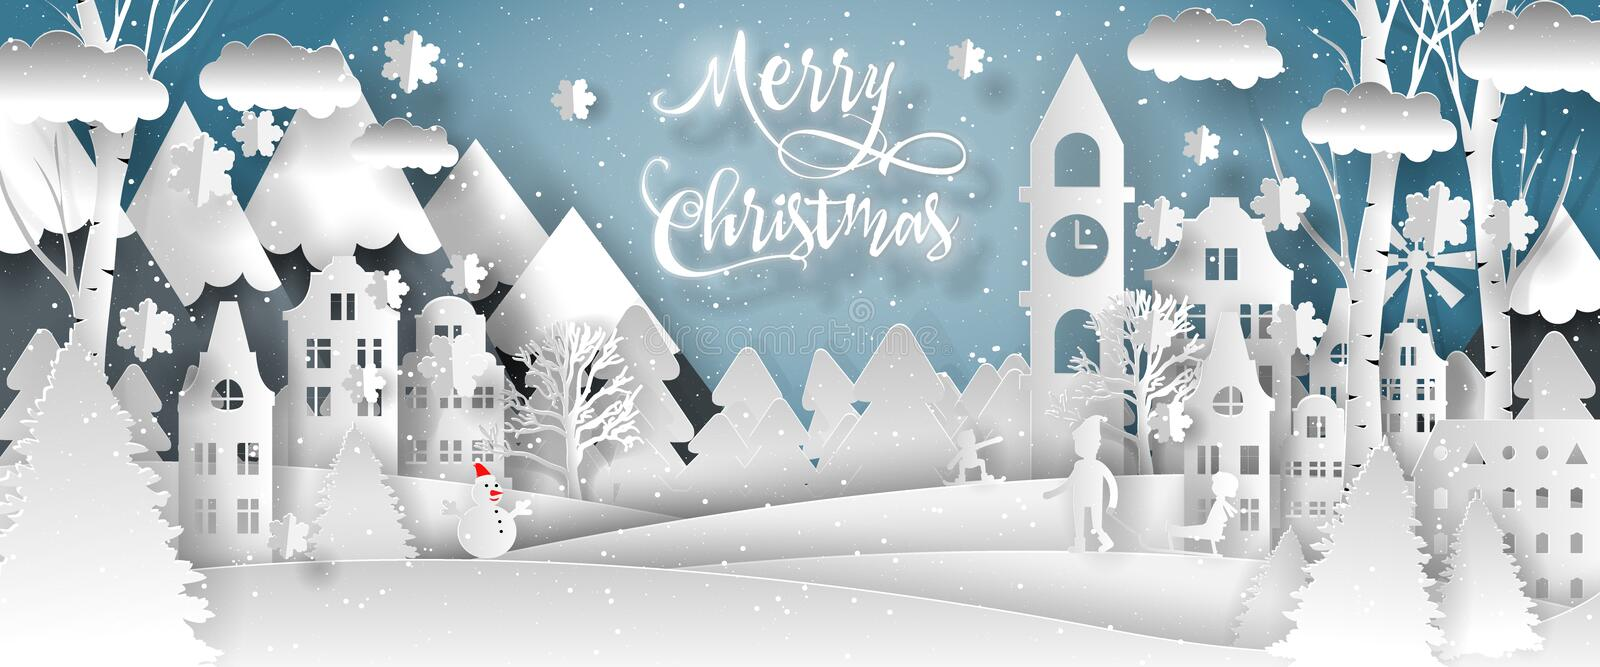 Merry christmas vector design. Happy new year 2019 and Merry christmas stock illustration